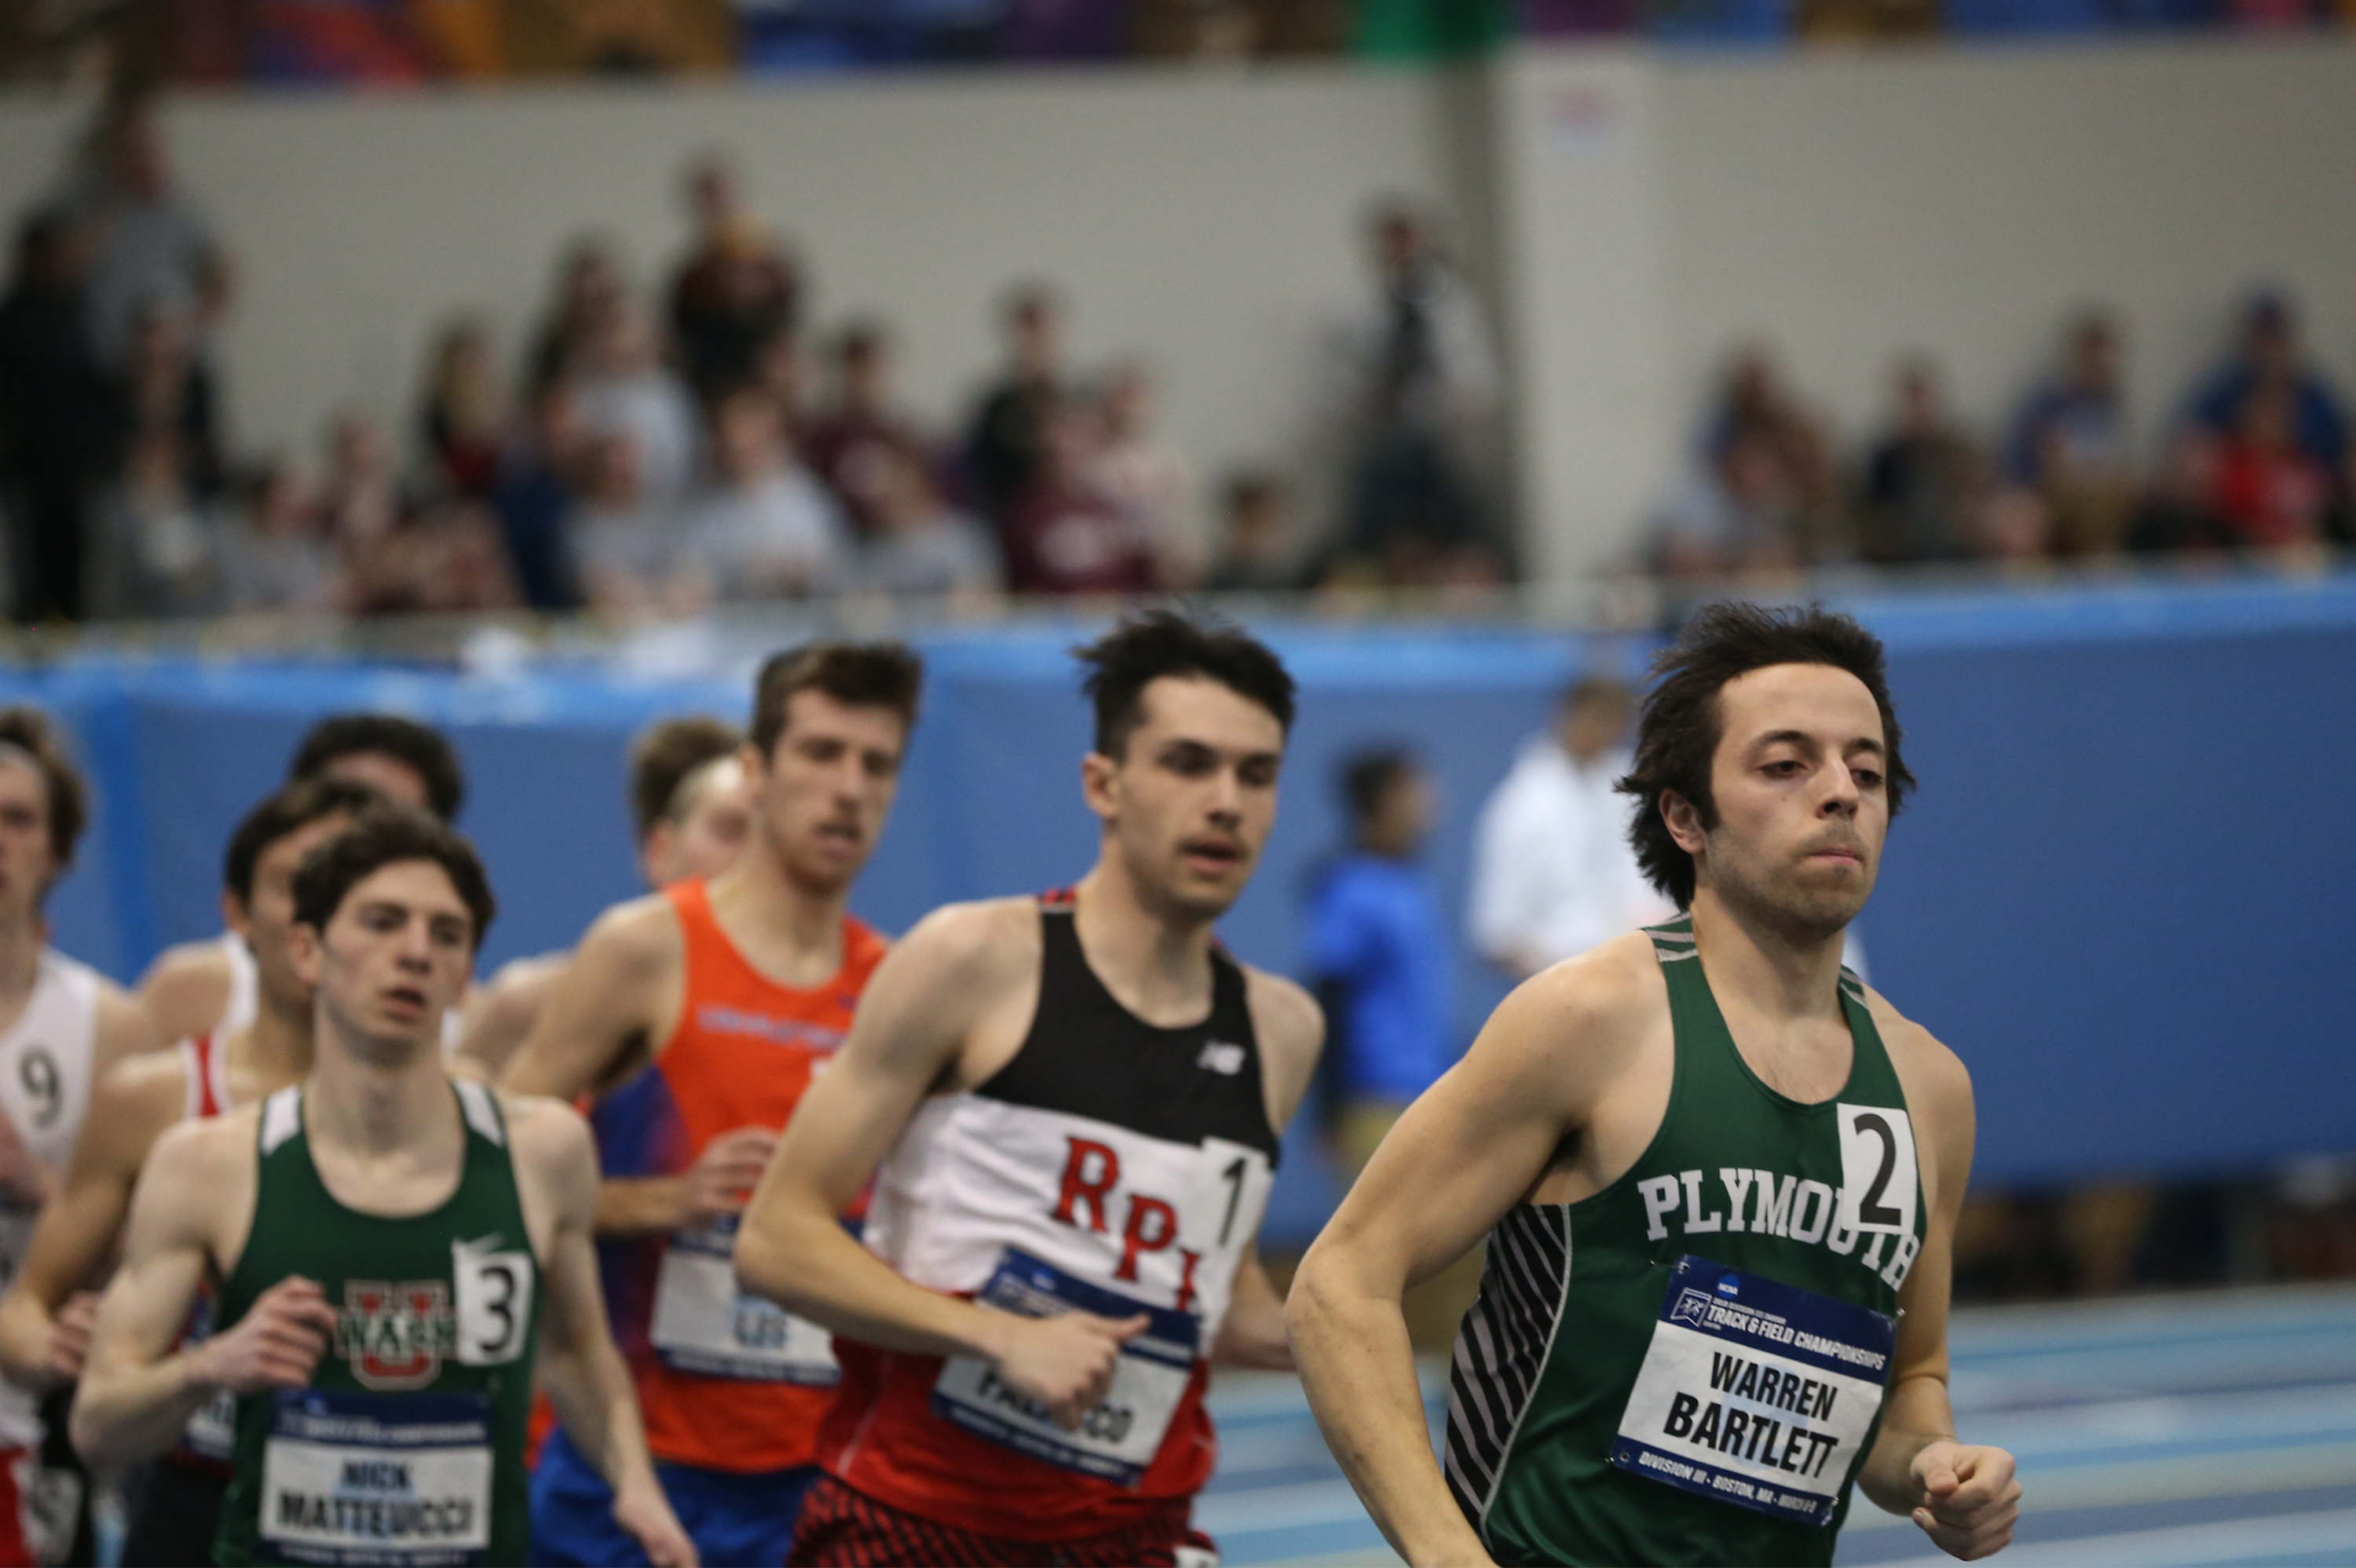 Warren Bartlett has many school records and claimed a fourth-straight LEC title in the 1,000m run while claiming All-America status in the mile run.